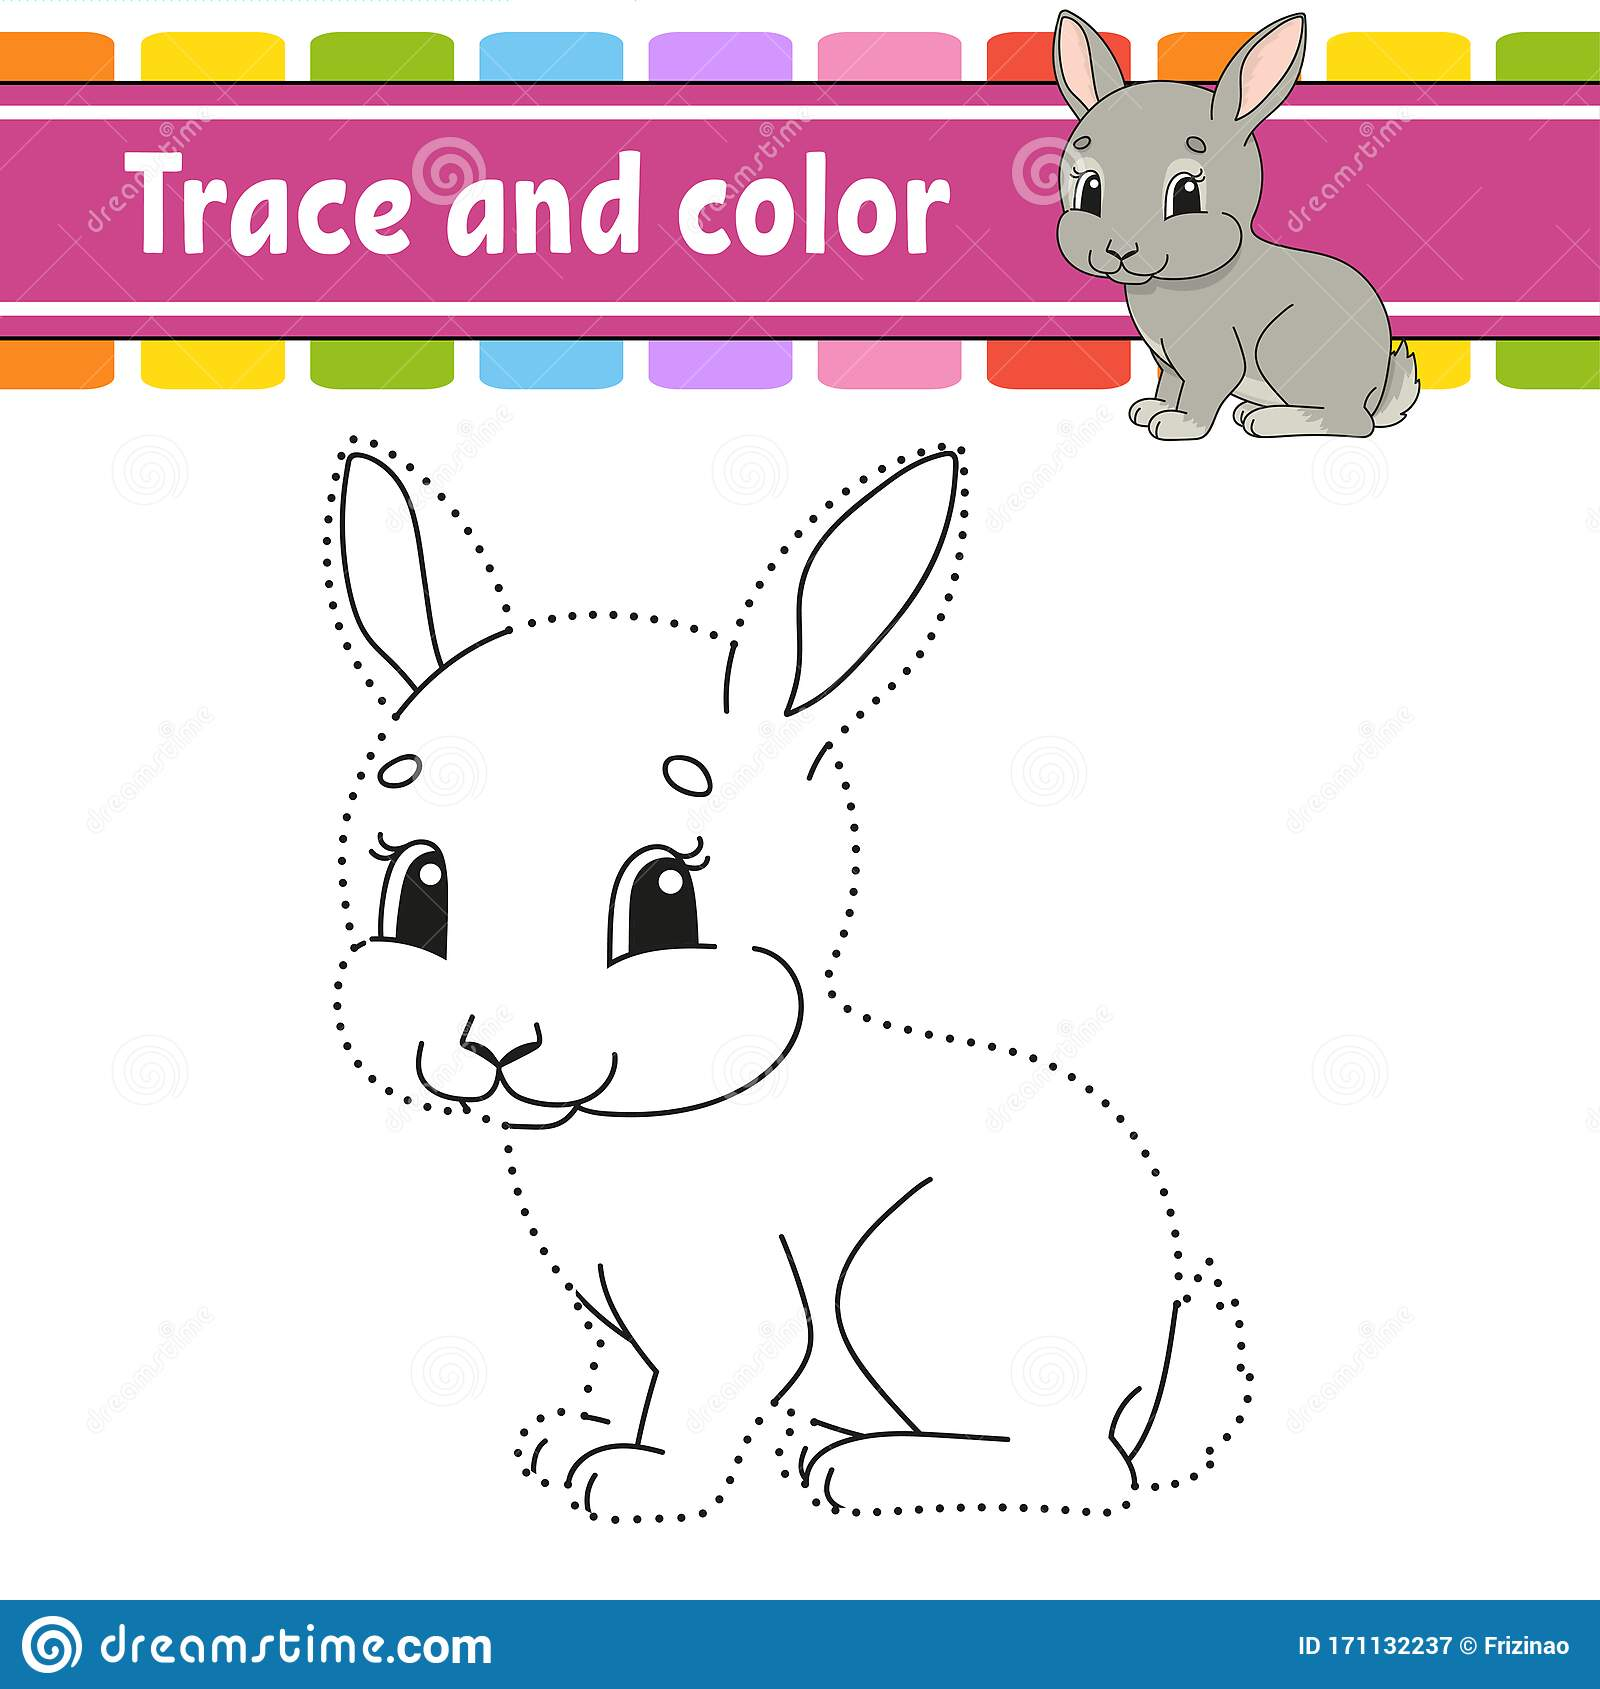 Trace And Color Rabbit Bunny Animal Coloring Page For